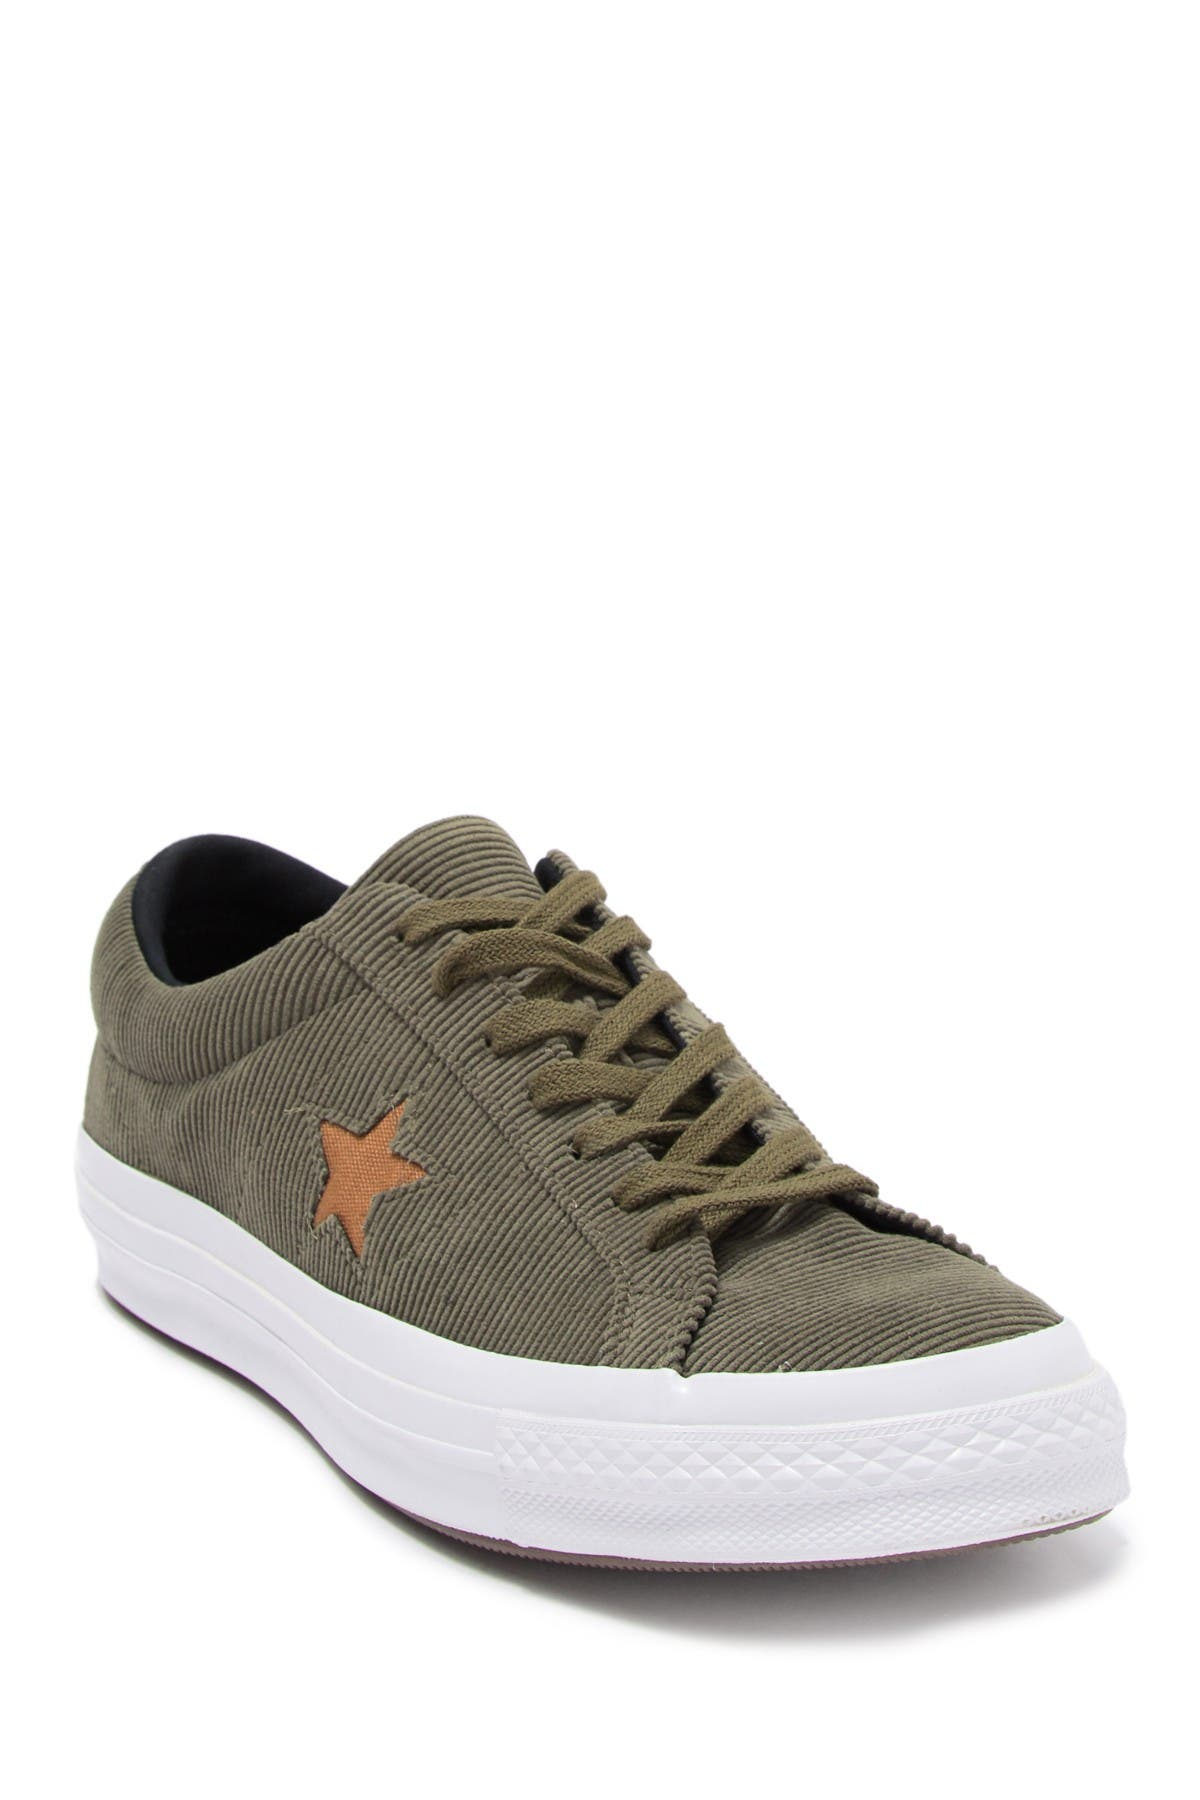 Converse   One Star OX Corduroy Low Top